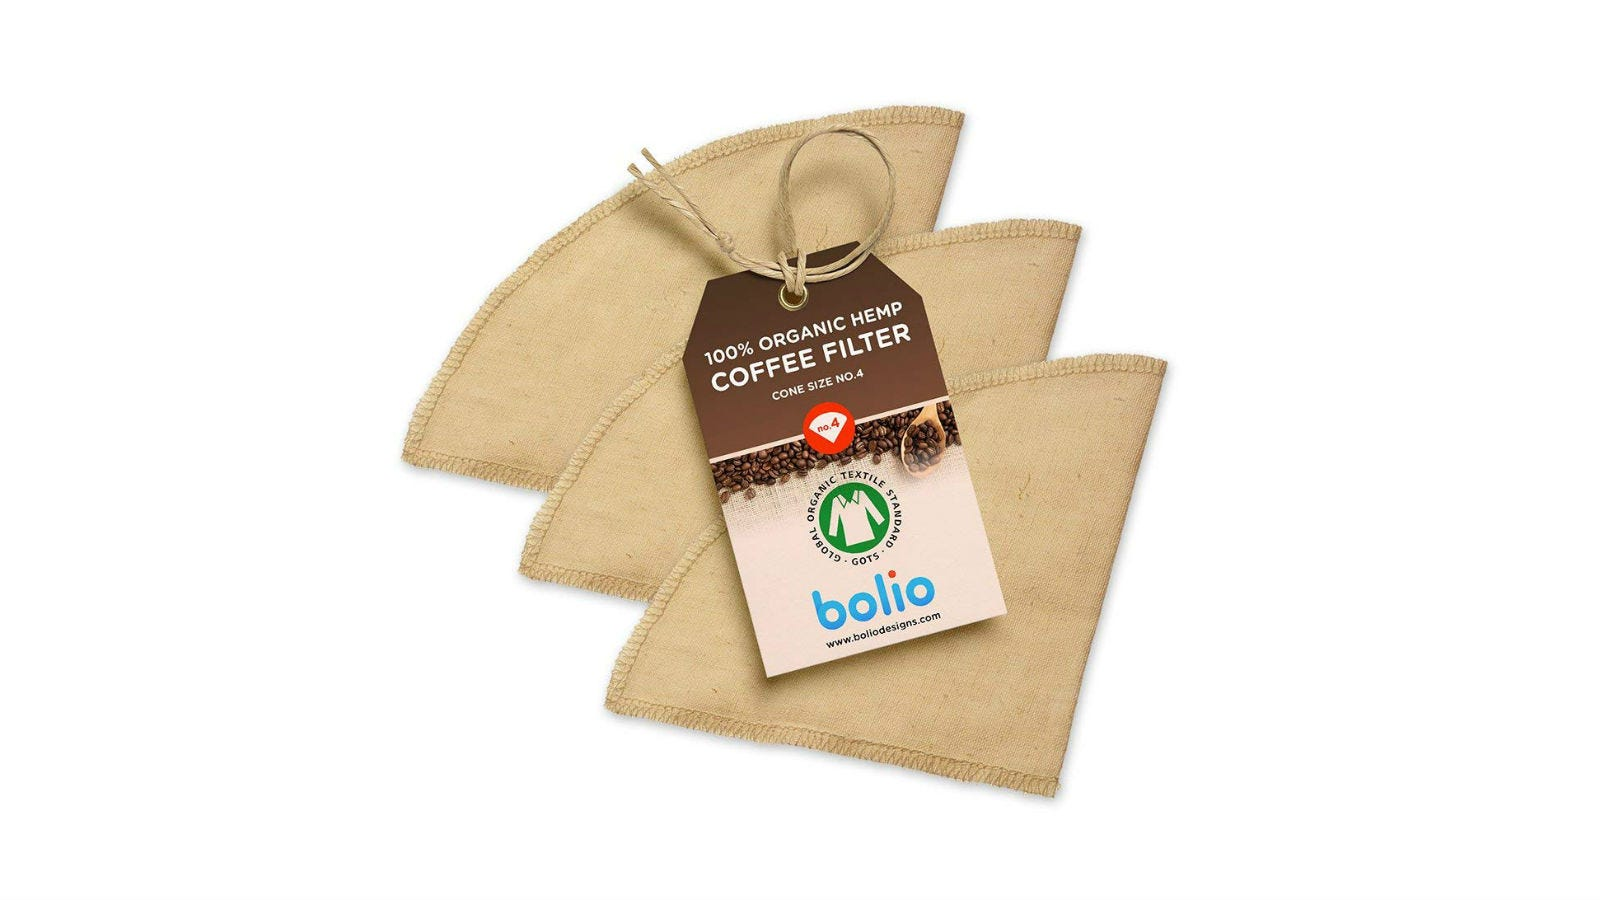 Three Bolio Organic Hemp Cone Coffee Filters